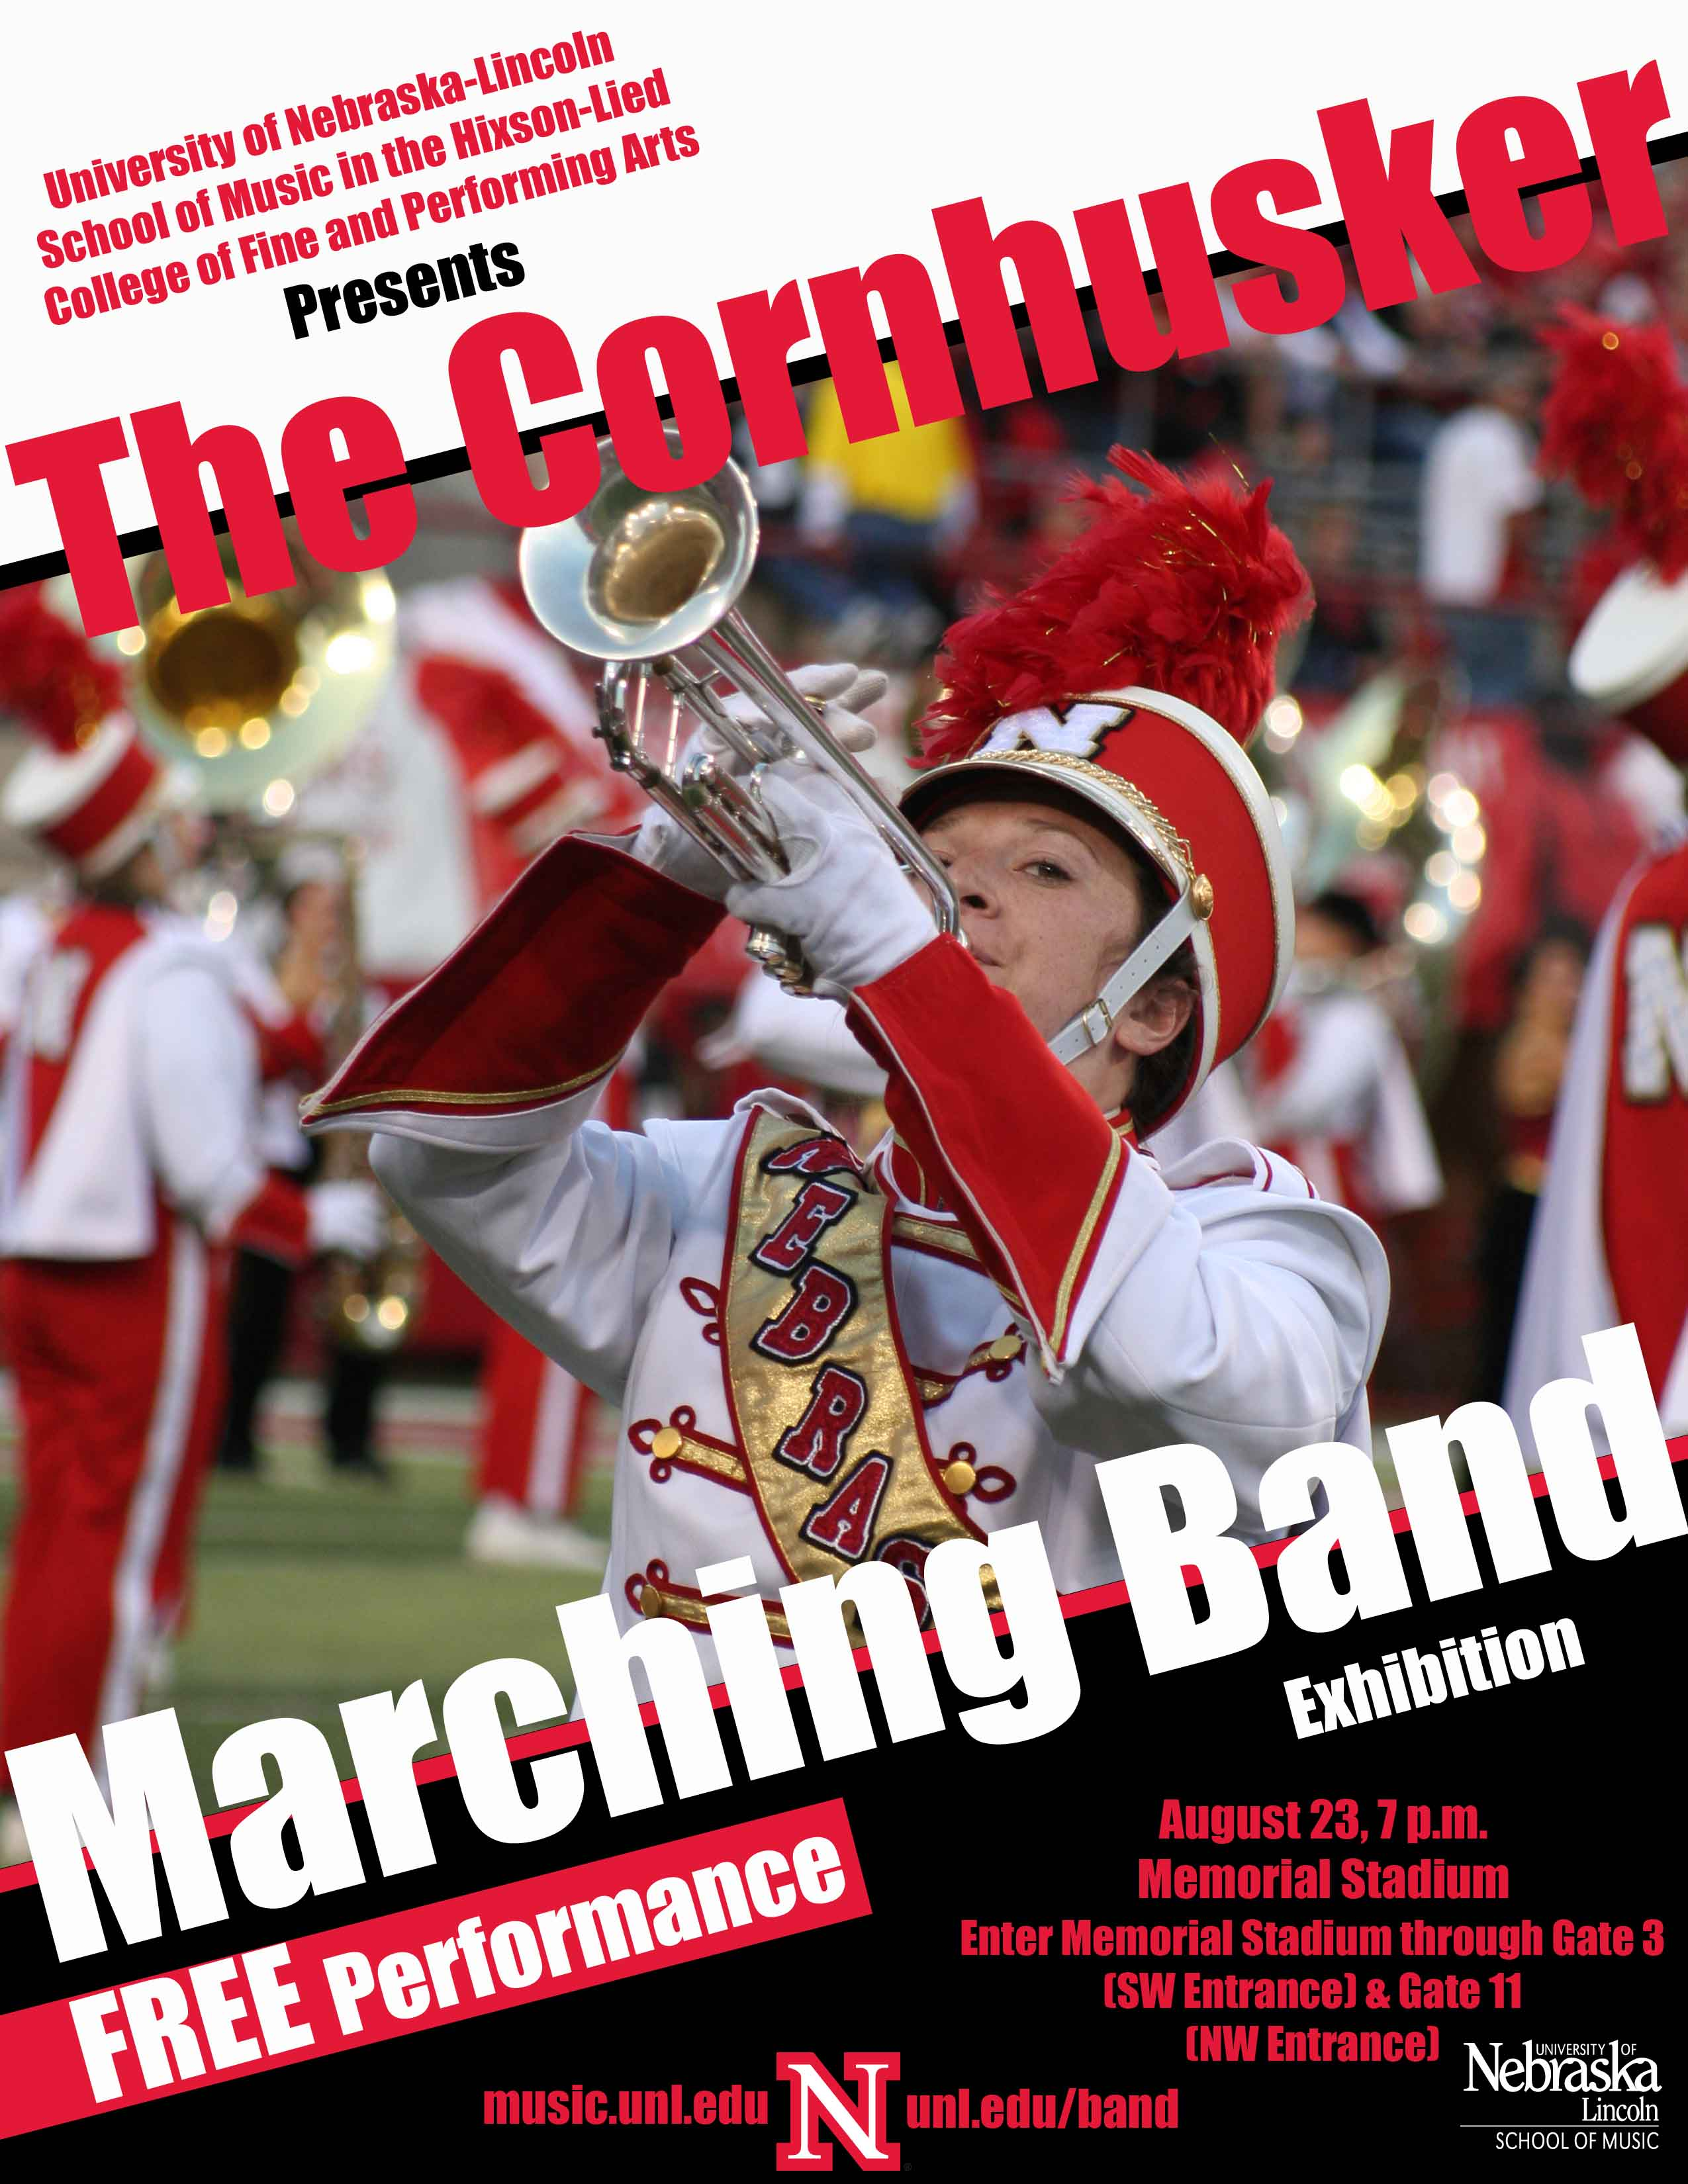 The Cornhusker Marching Band Exhibition